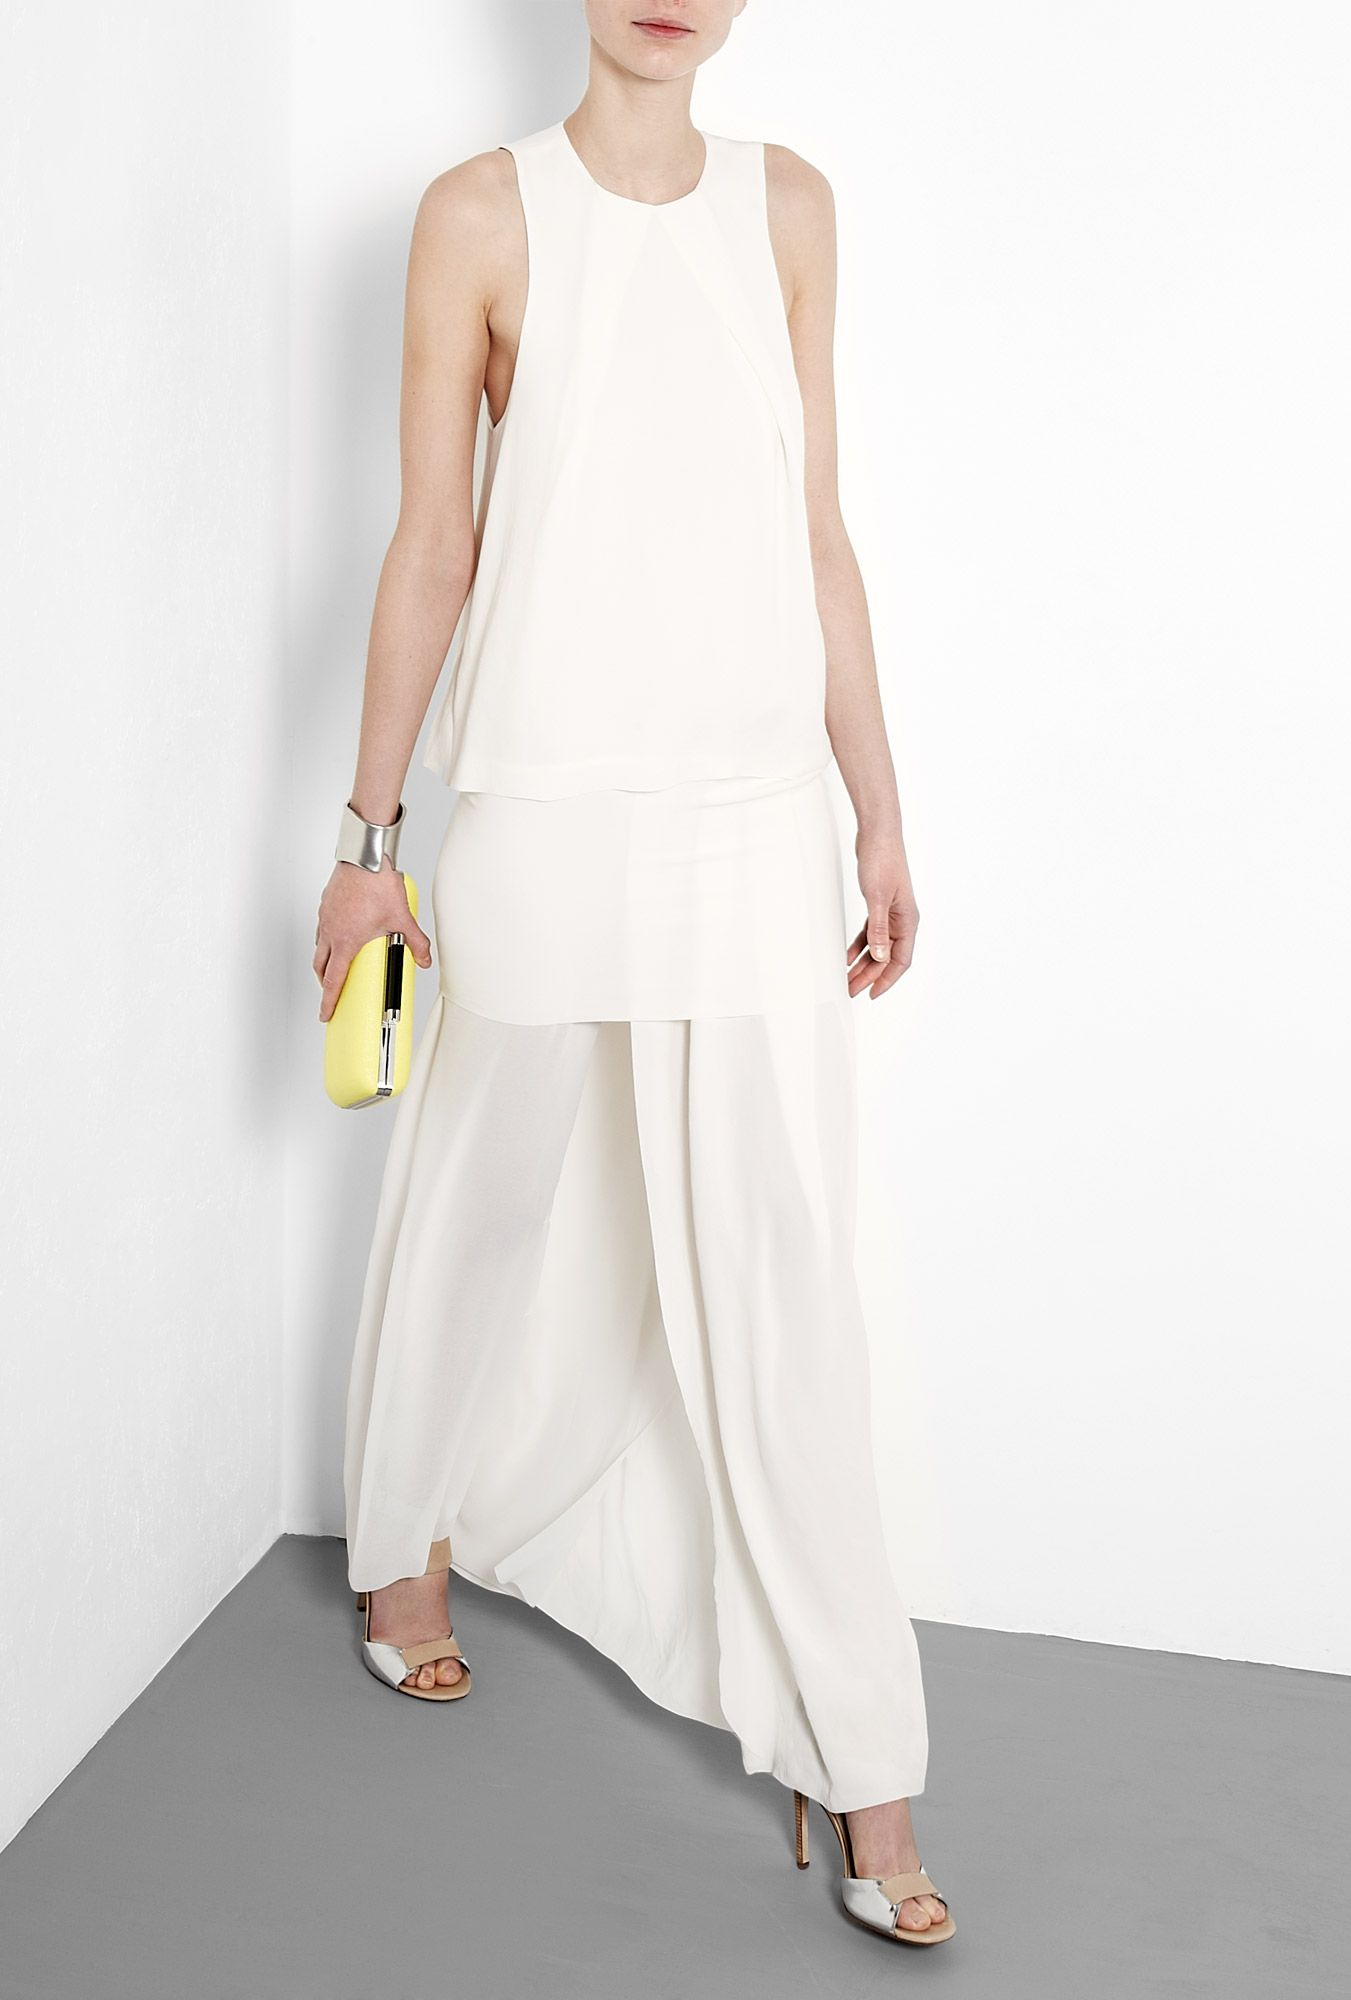 Acne lily white barika sheer maxi dress with images